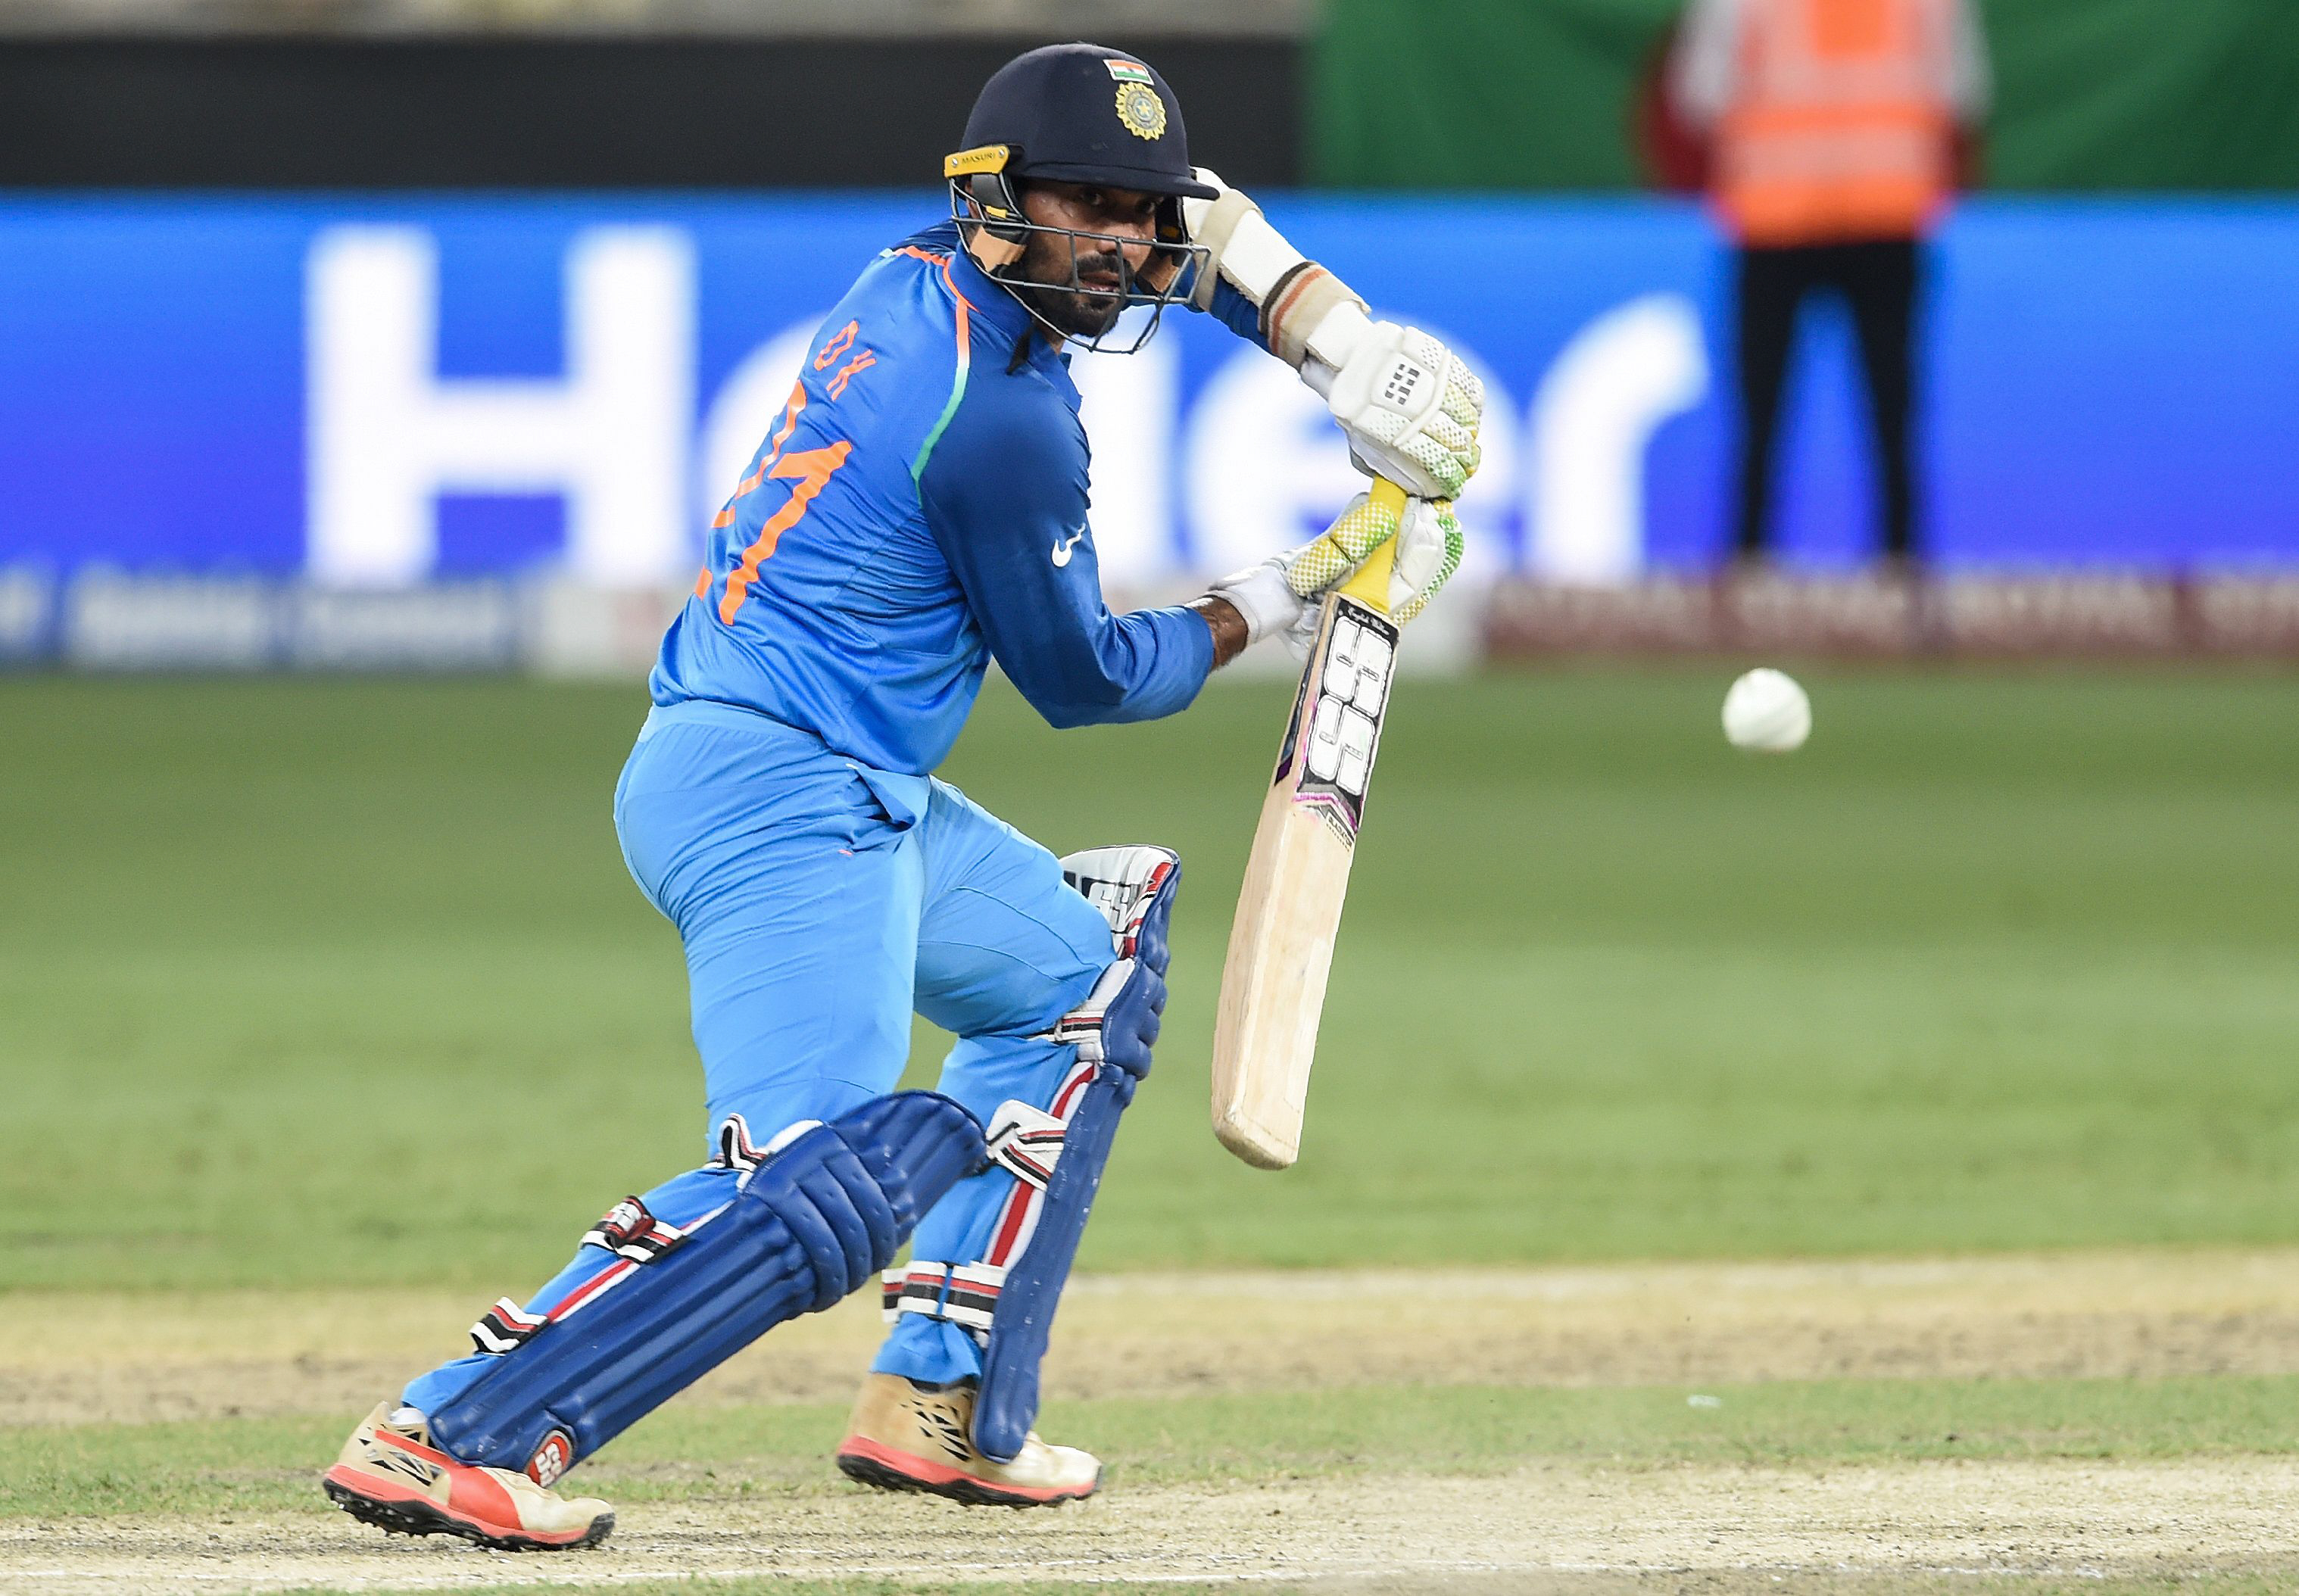 Indian batsman Dinesh Karthik plays a shot during the final one day international (ODI) Asia Cup cricket match between Bangladesh and India at the Dubai International Cricket Stadium in Dubai